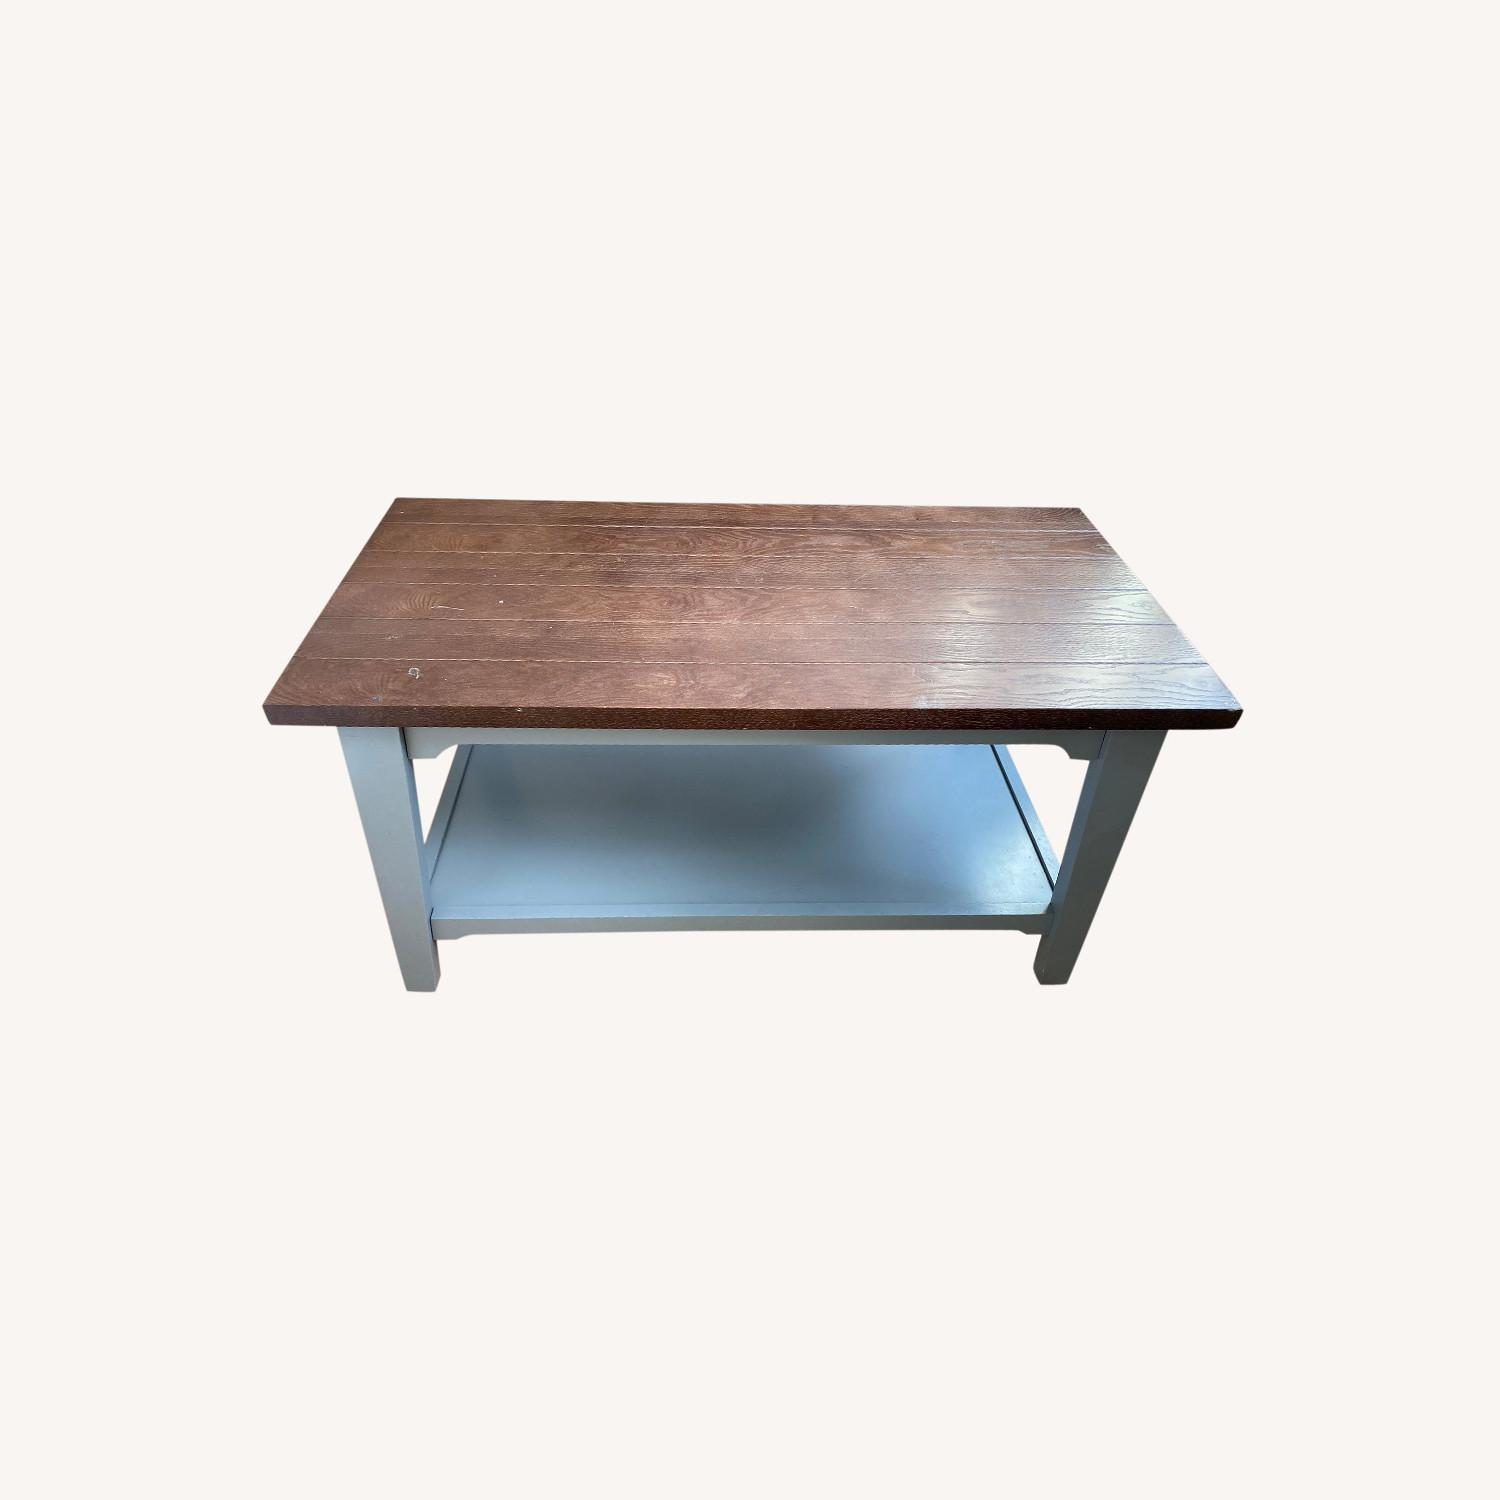 Chatham House Newport Coffee Table in Grey - image-0